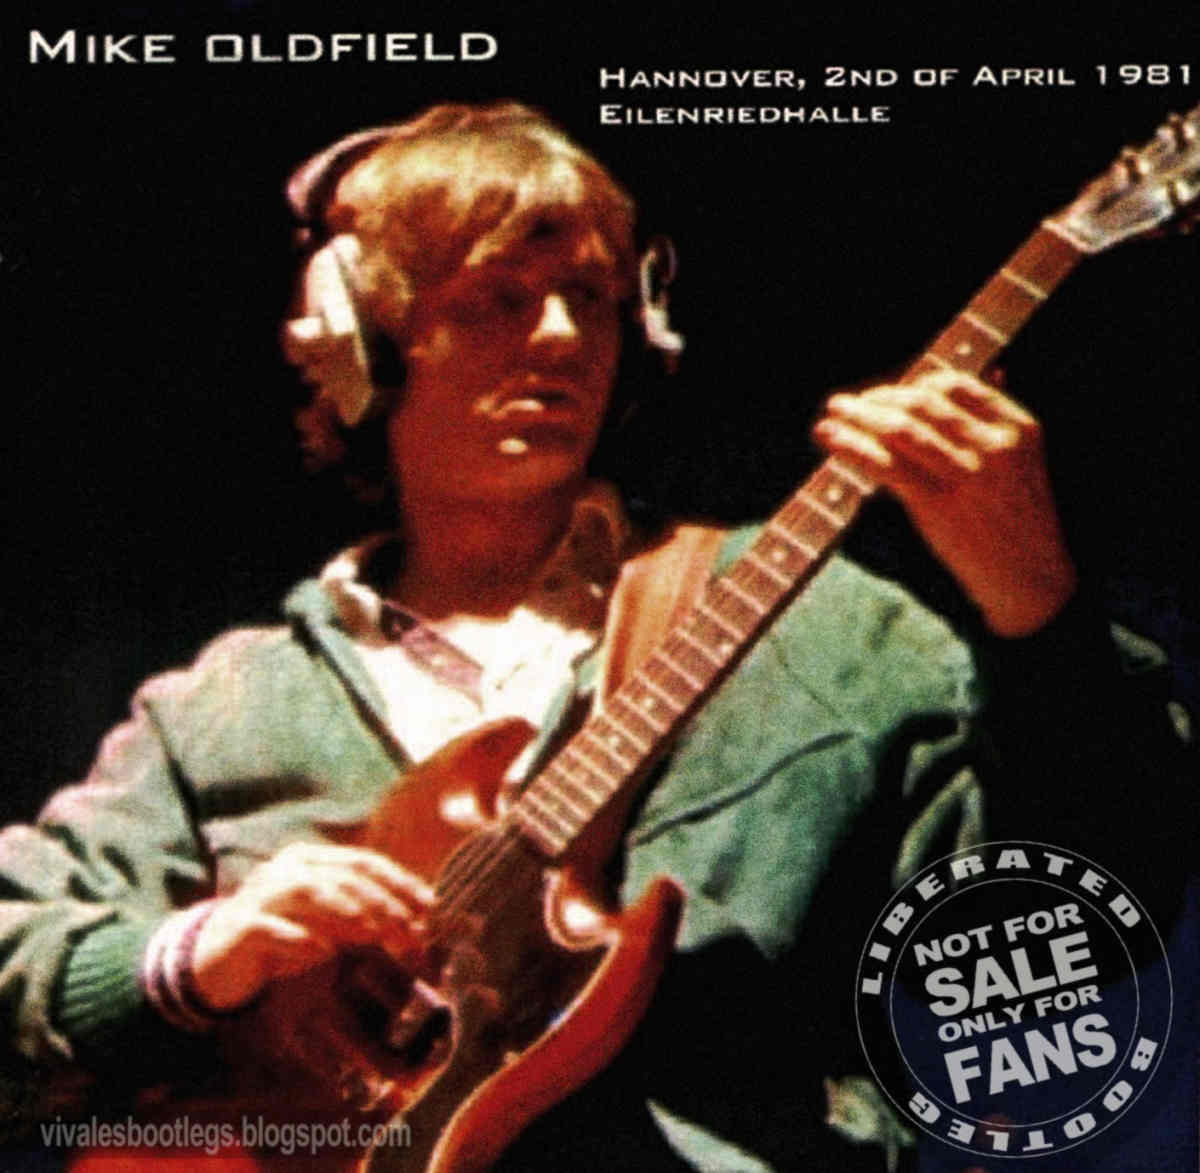 Mike Oldfield - Best To Dance